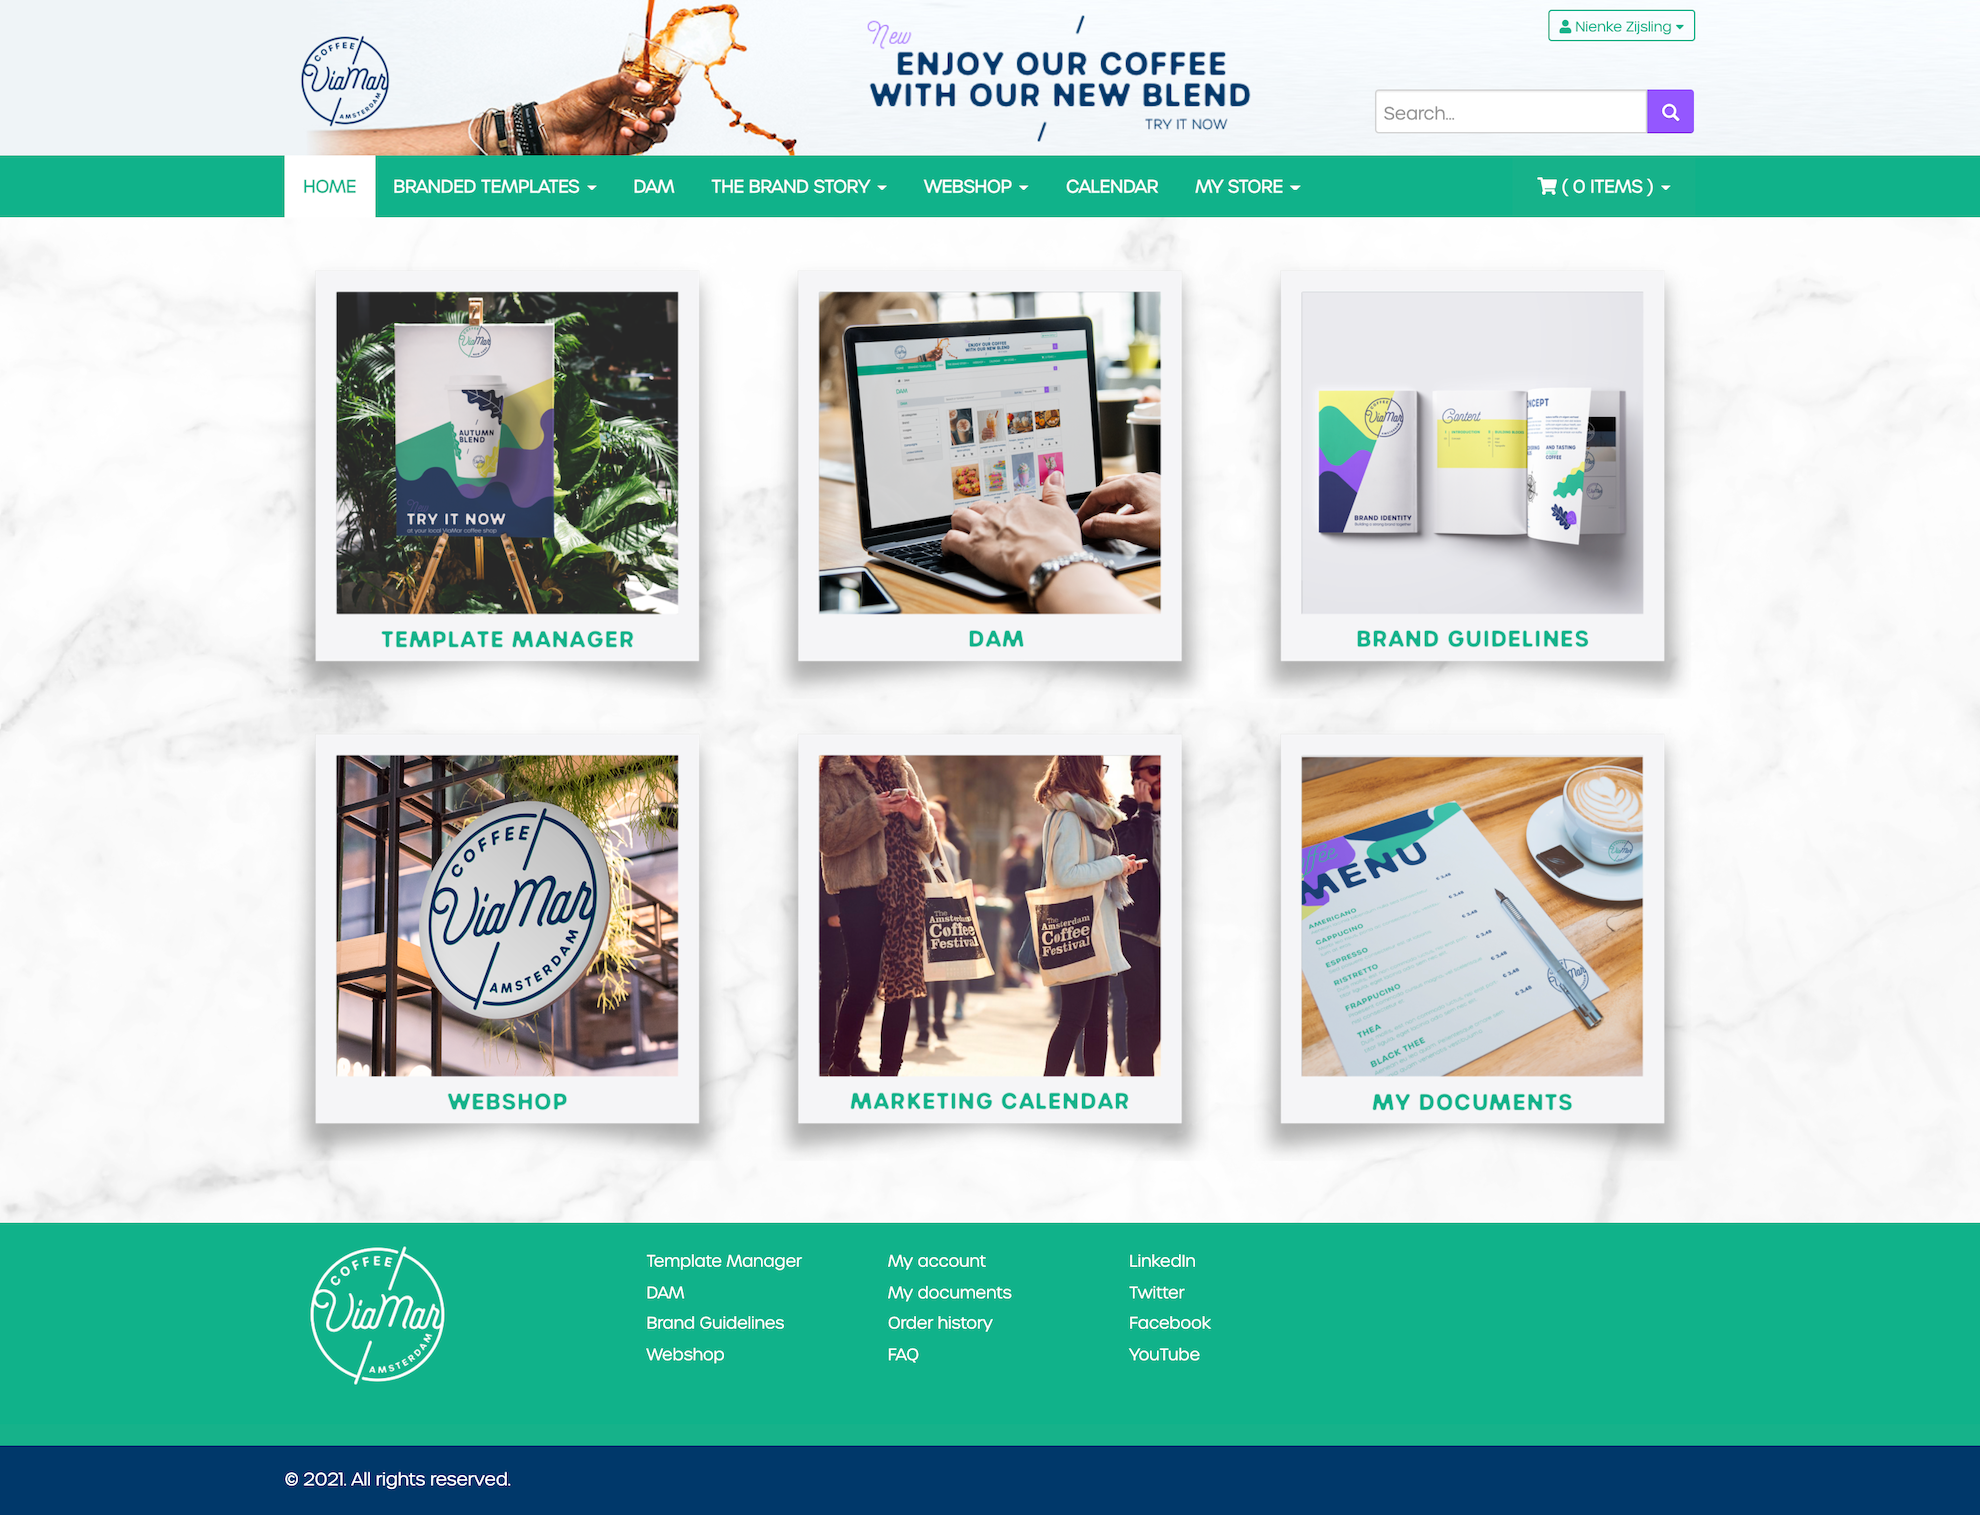 Marvia screenshot: On-brand Brand Portal customized to your preferences